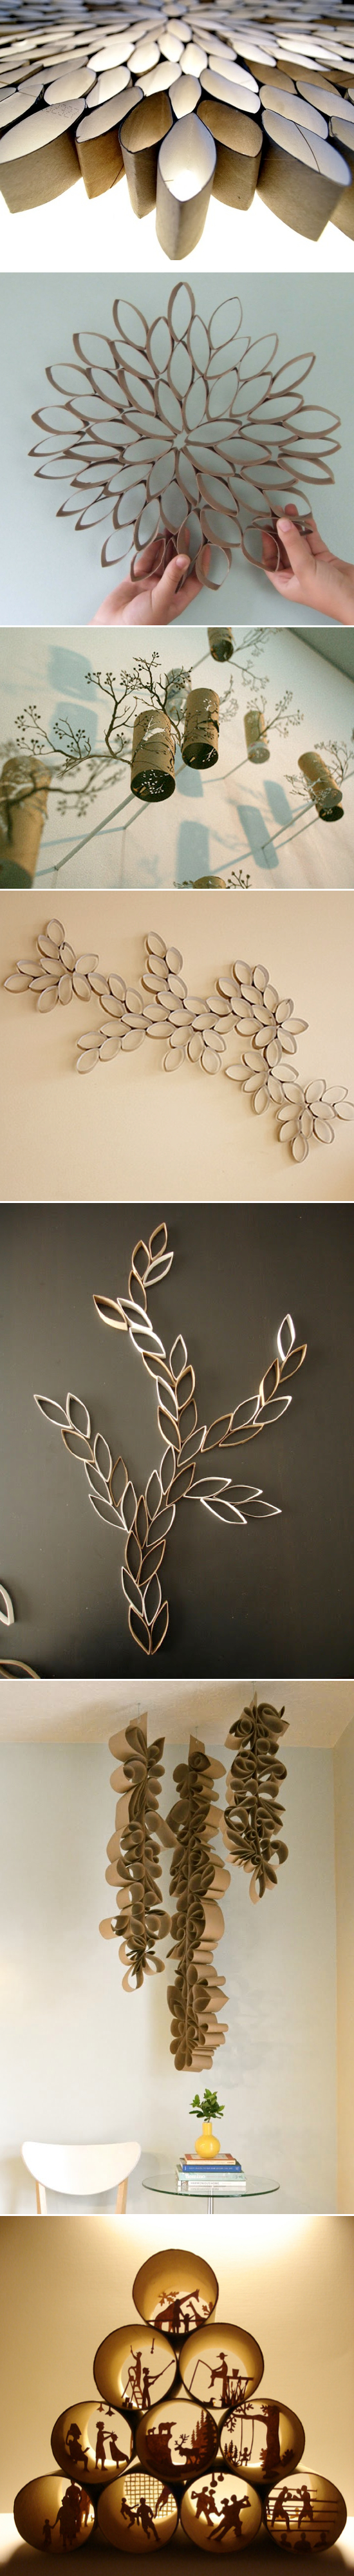 Toilet Paper Roll Art